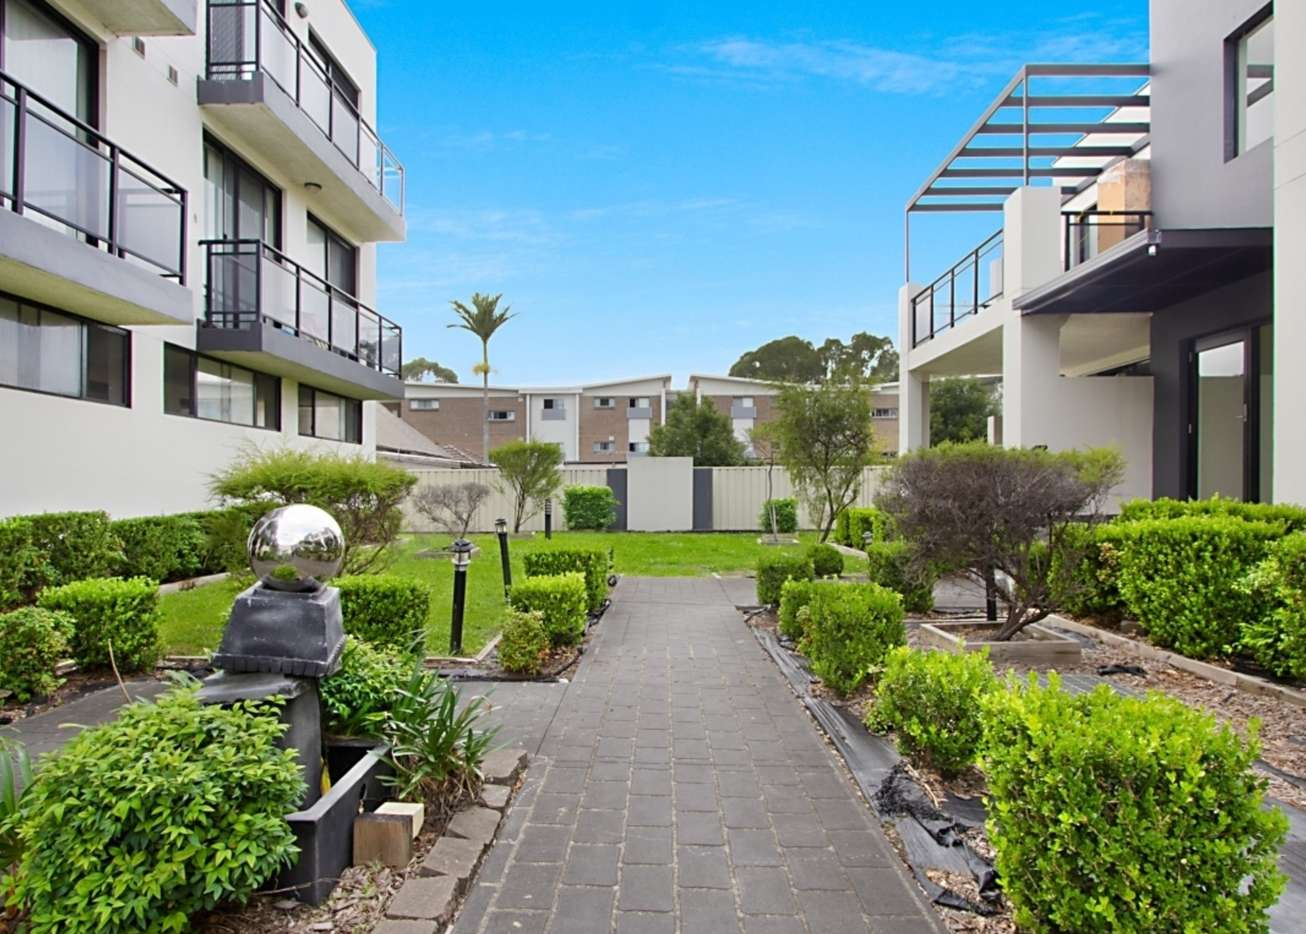 Main view of Homely unit listing, 15/7 Short Street, Wentworthville, NSW 2145